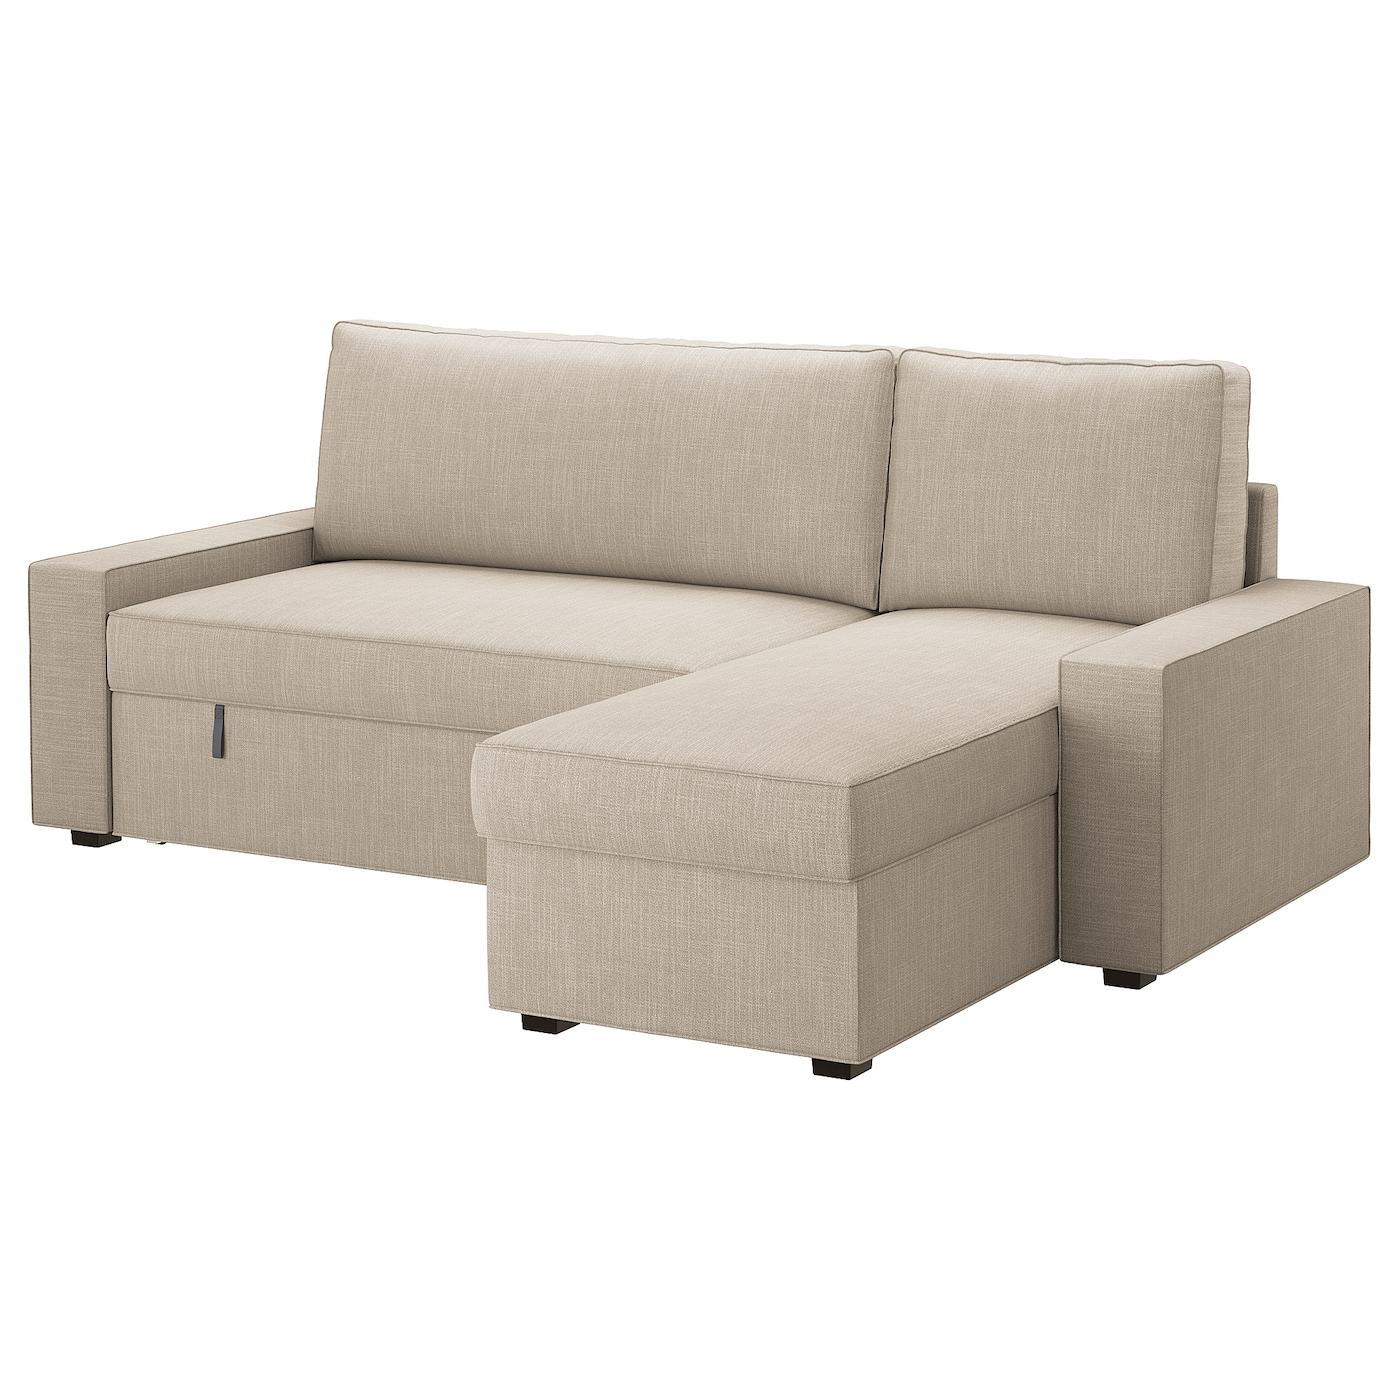 Vilasund cover sofa bed with chaise longue hillared beige ikea - Chaise longue sofa bed ...